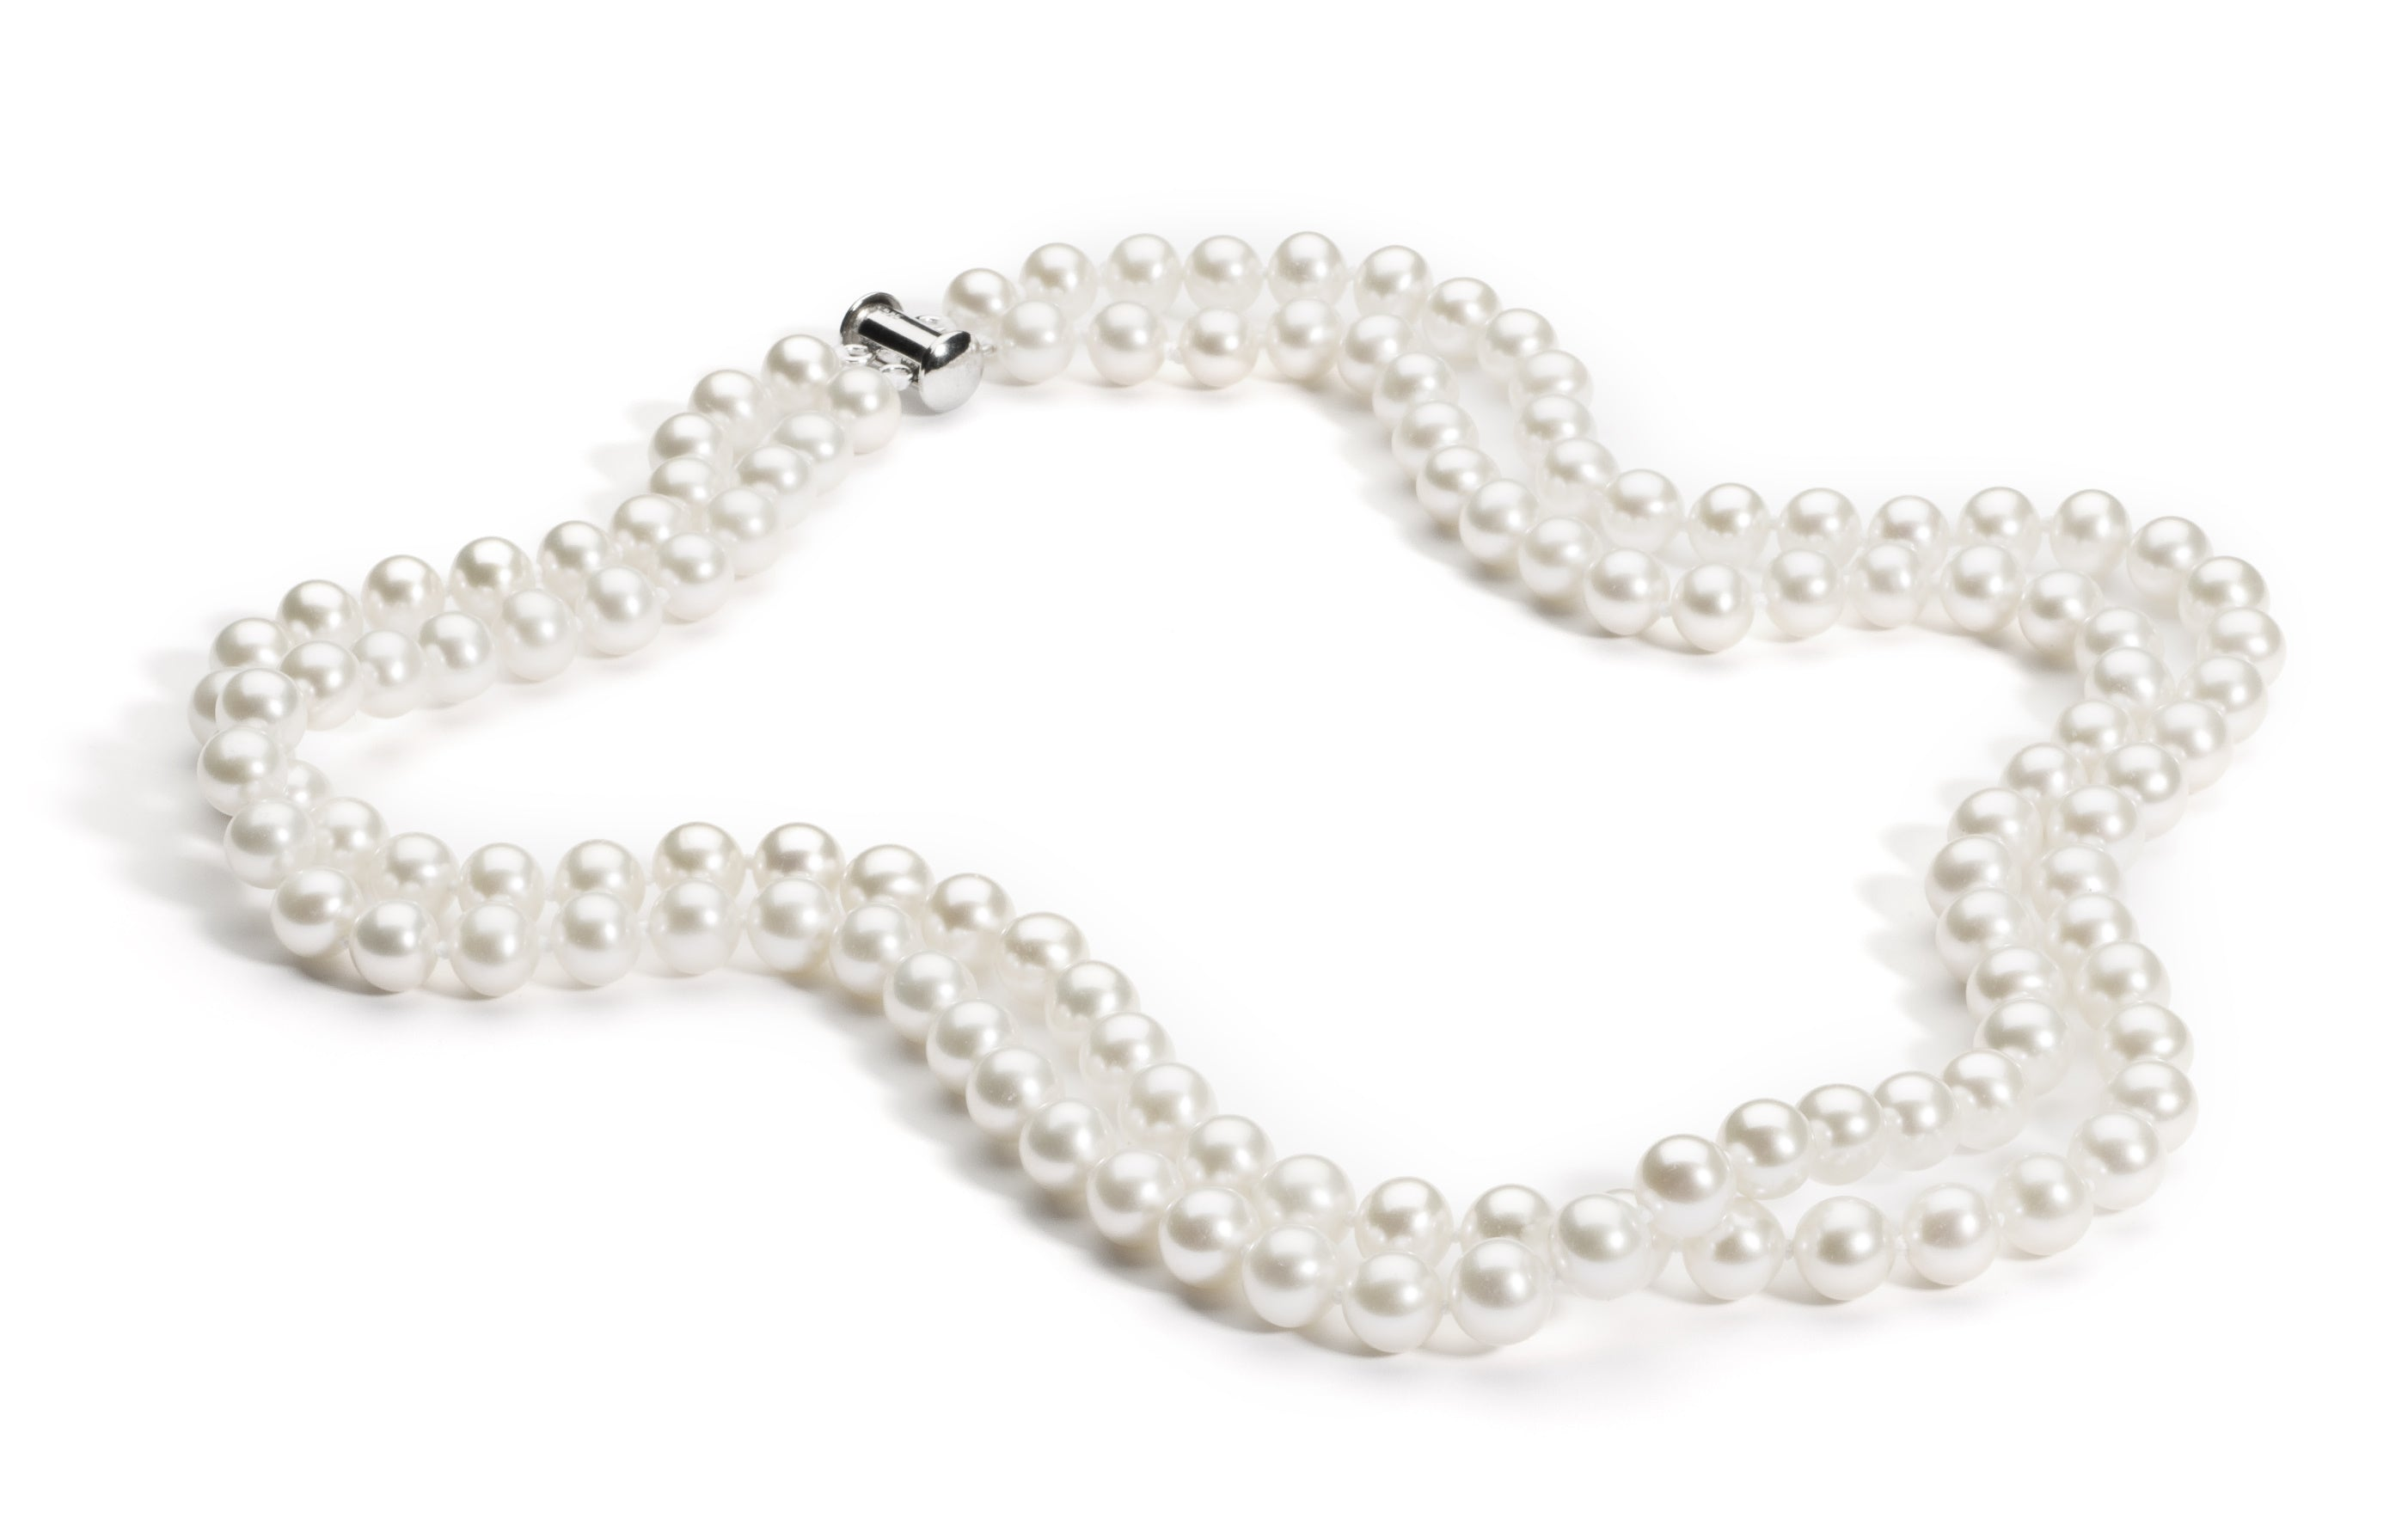 Double Strand Necklace/Bracelet Set 7.0-8.0 mm White Freshwater Pearls